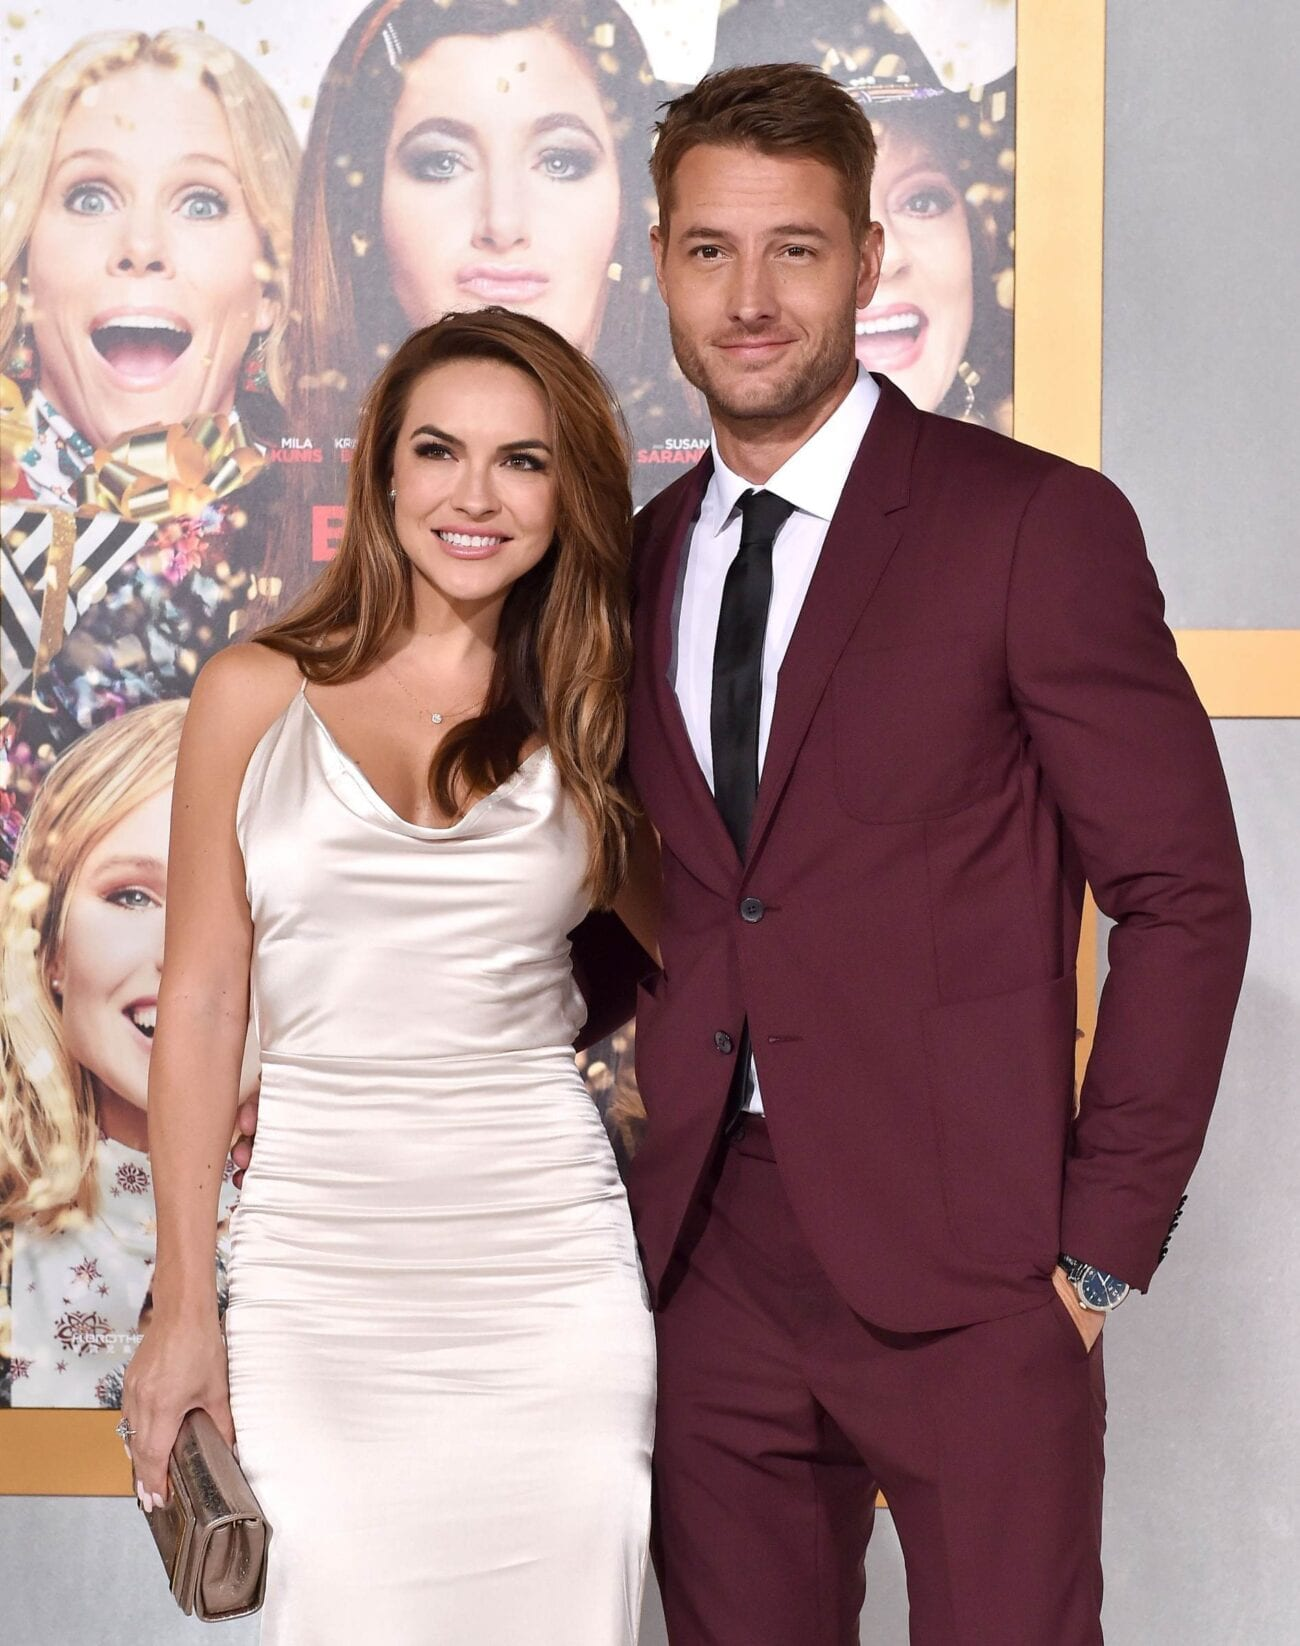 Real estate agent Chrishell Stause and her public split from husband Justin Hartley has been discussed a lot recently. What went wrong?